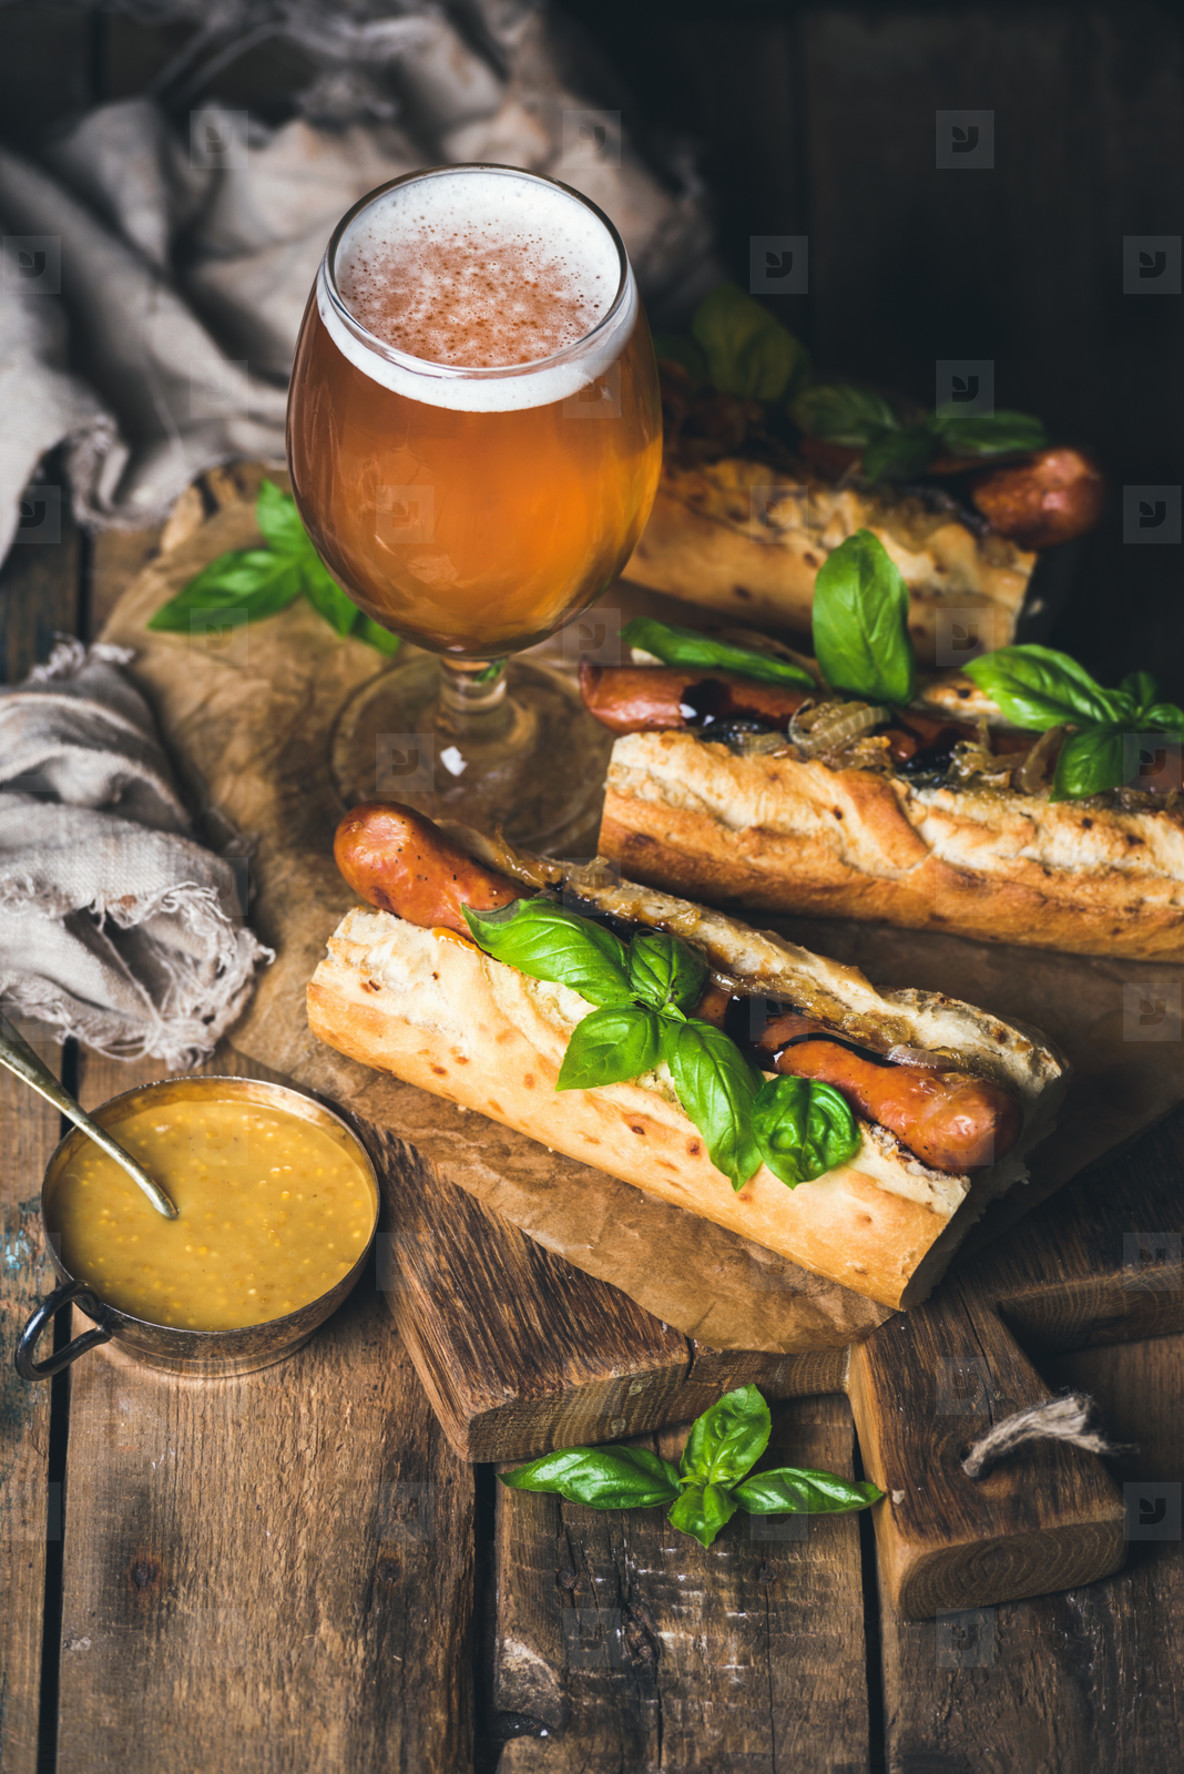 Glass of wheat beer and grilled sausage dogs in baguette